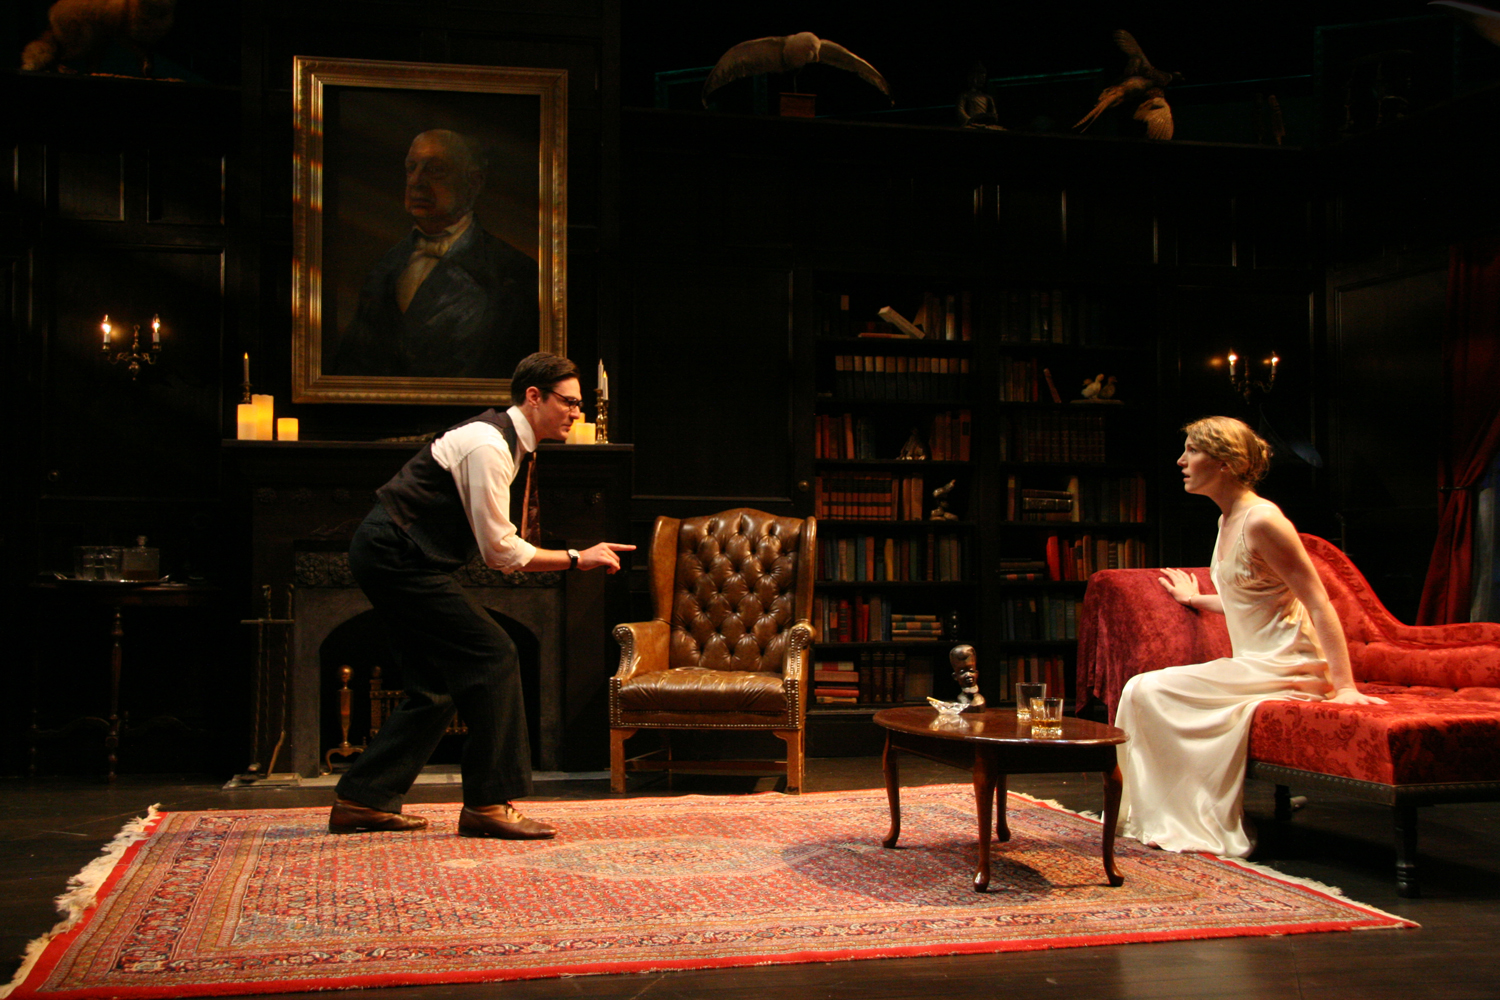 ACT III, BACK IN THE LIBRARY